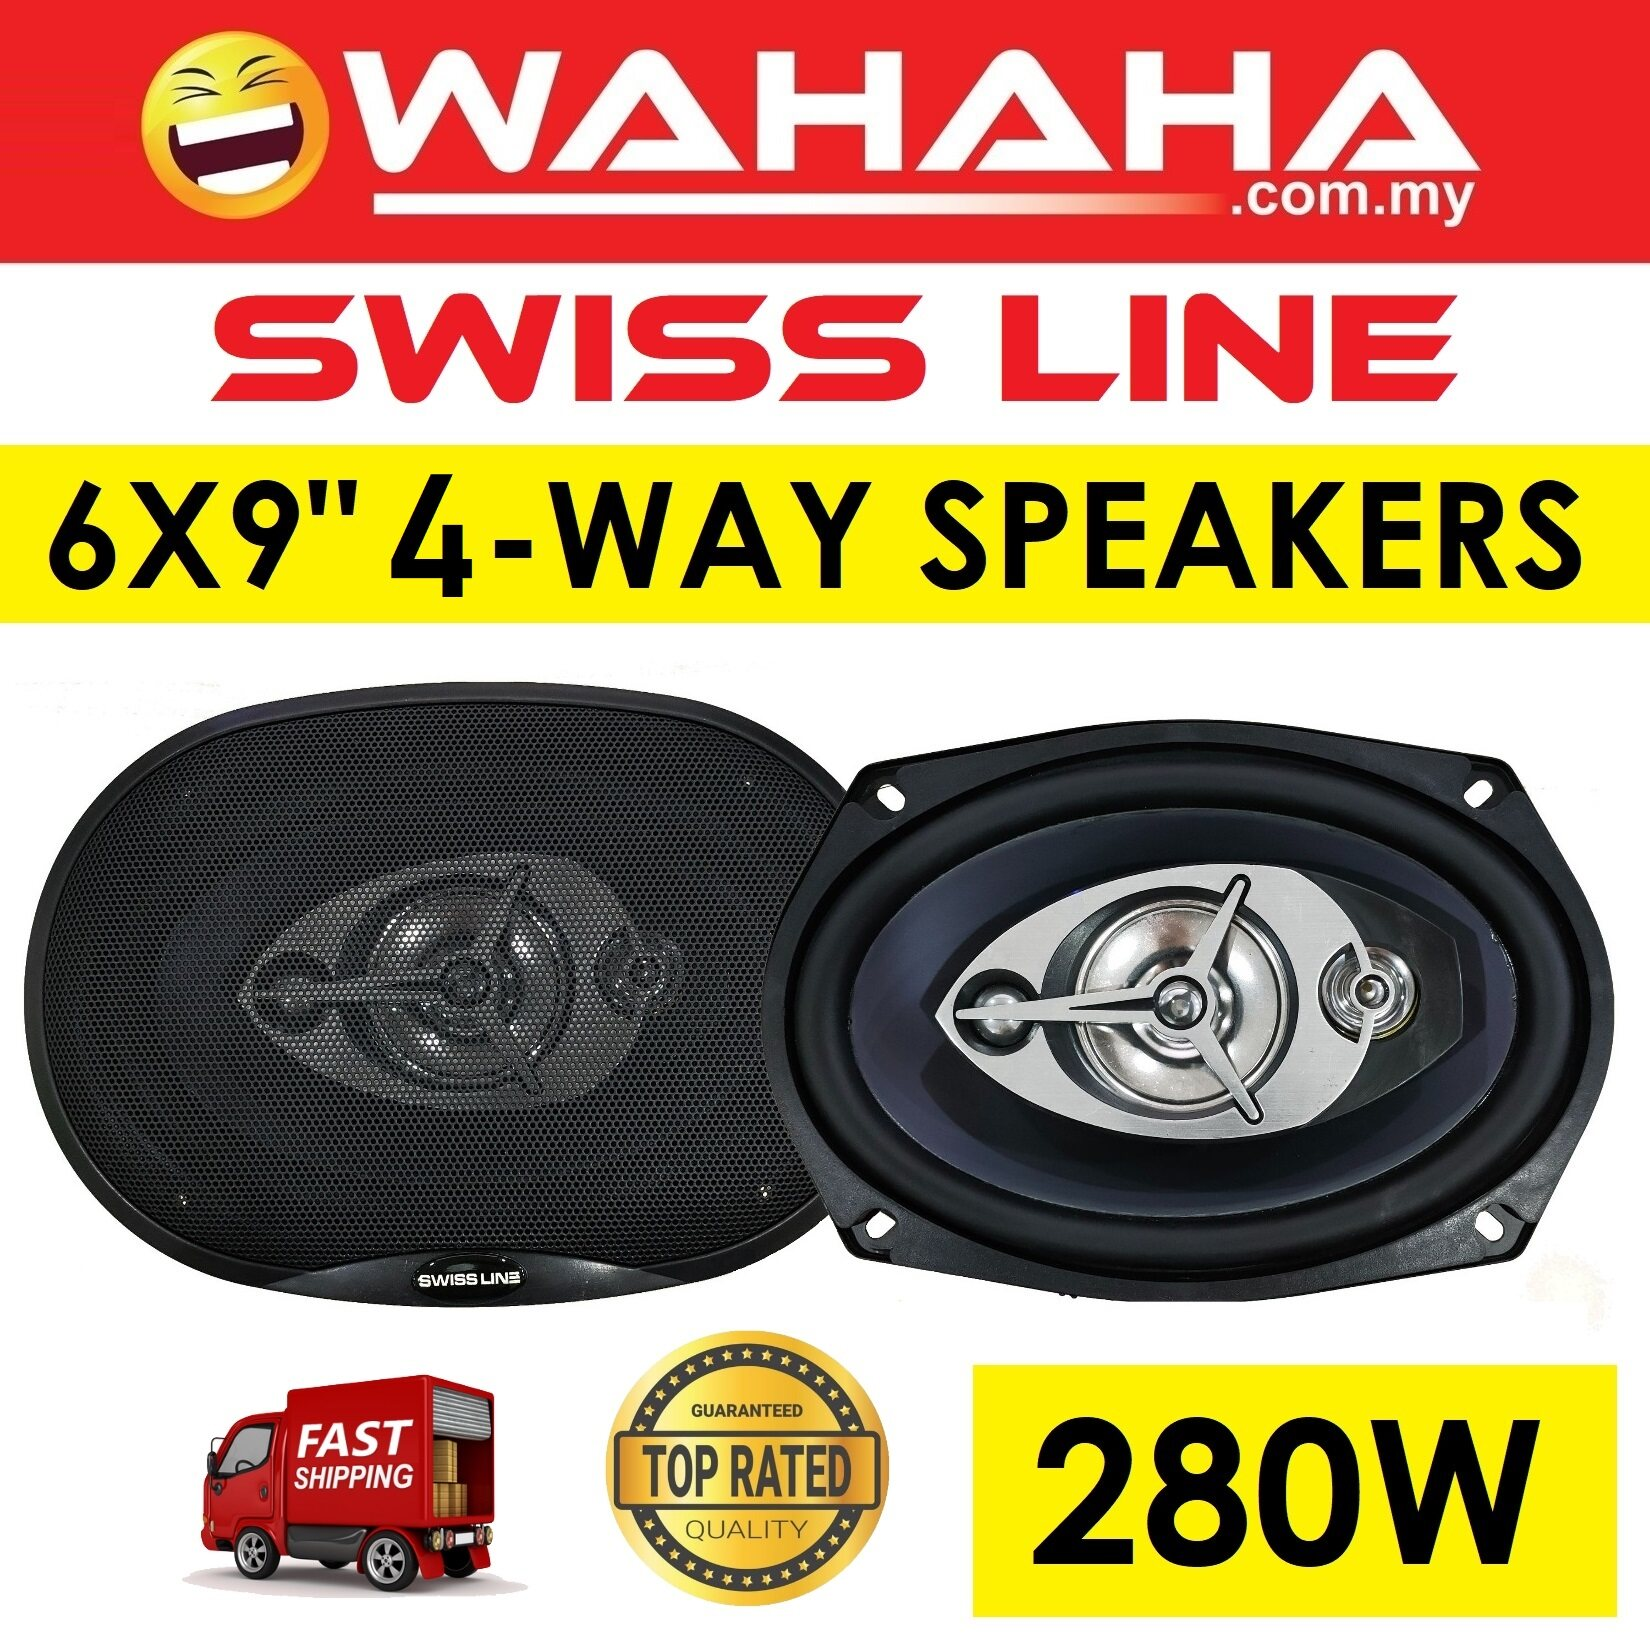 "Swiss Line S-69 6x9 4-Way Car Speakers 280W Suitable for 6x9"" Type of Car"